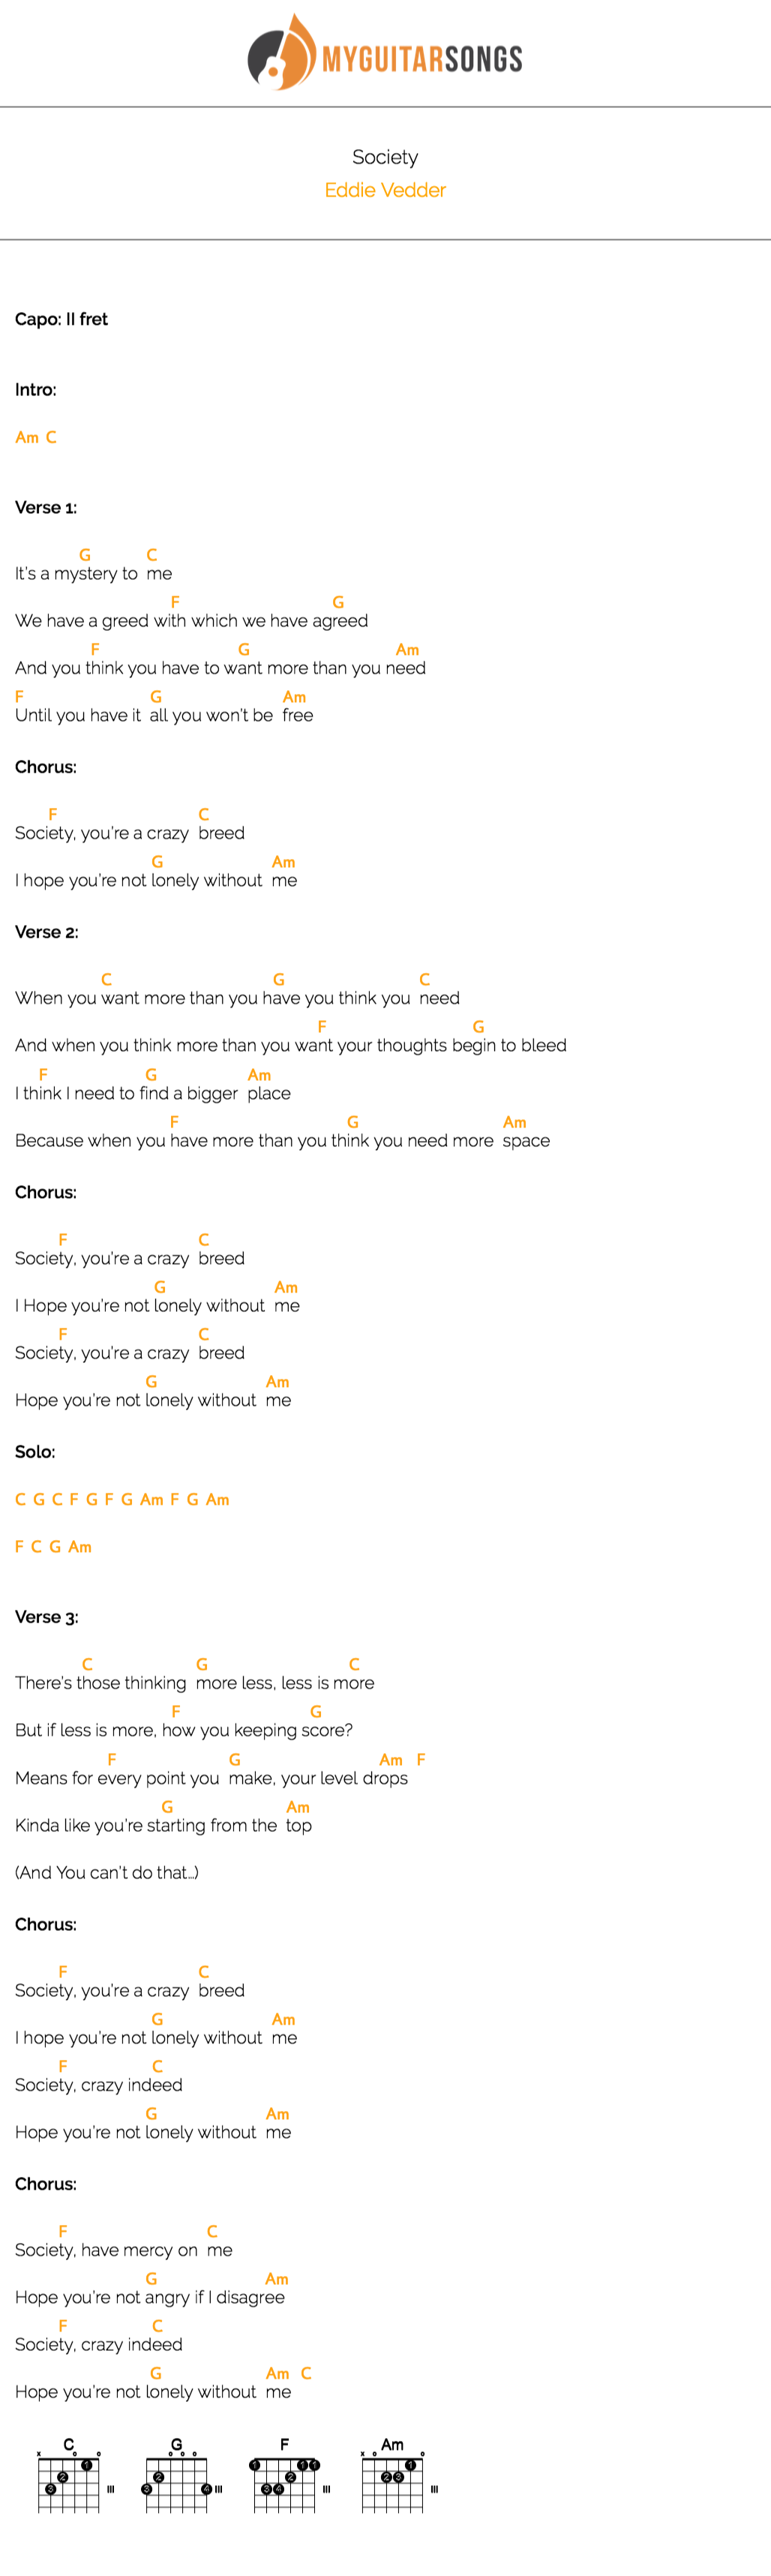 Society by eddie vedder v2 ukulele pinterest eddie vedder start strumming some chords of society by eddie vedder create your own beautiful pdf songbook hexwebz Choice Image